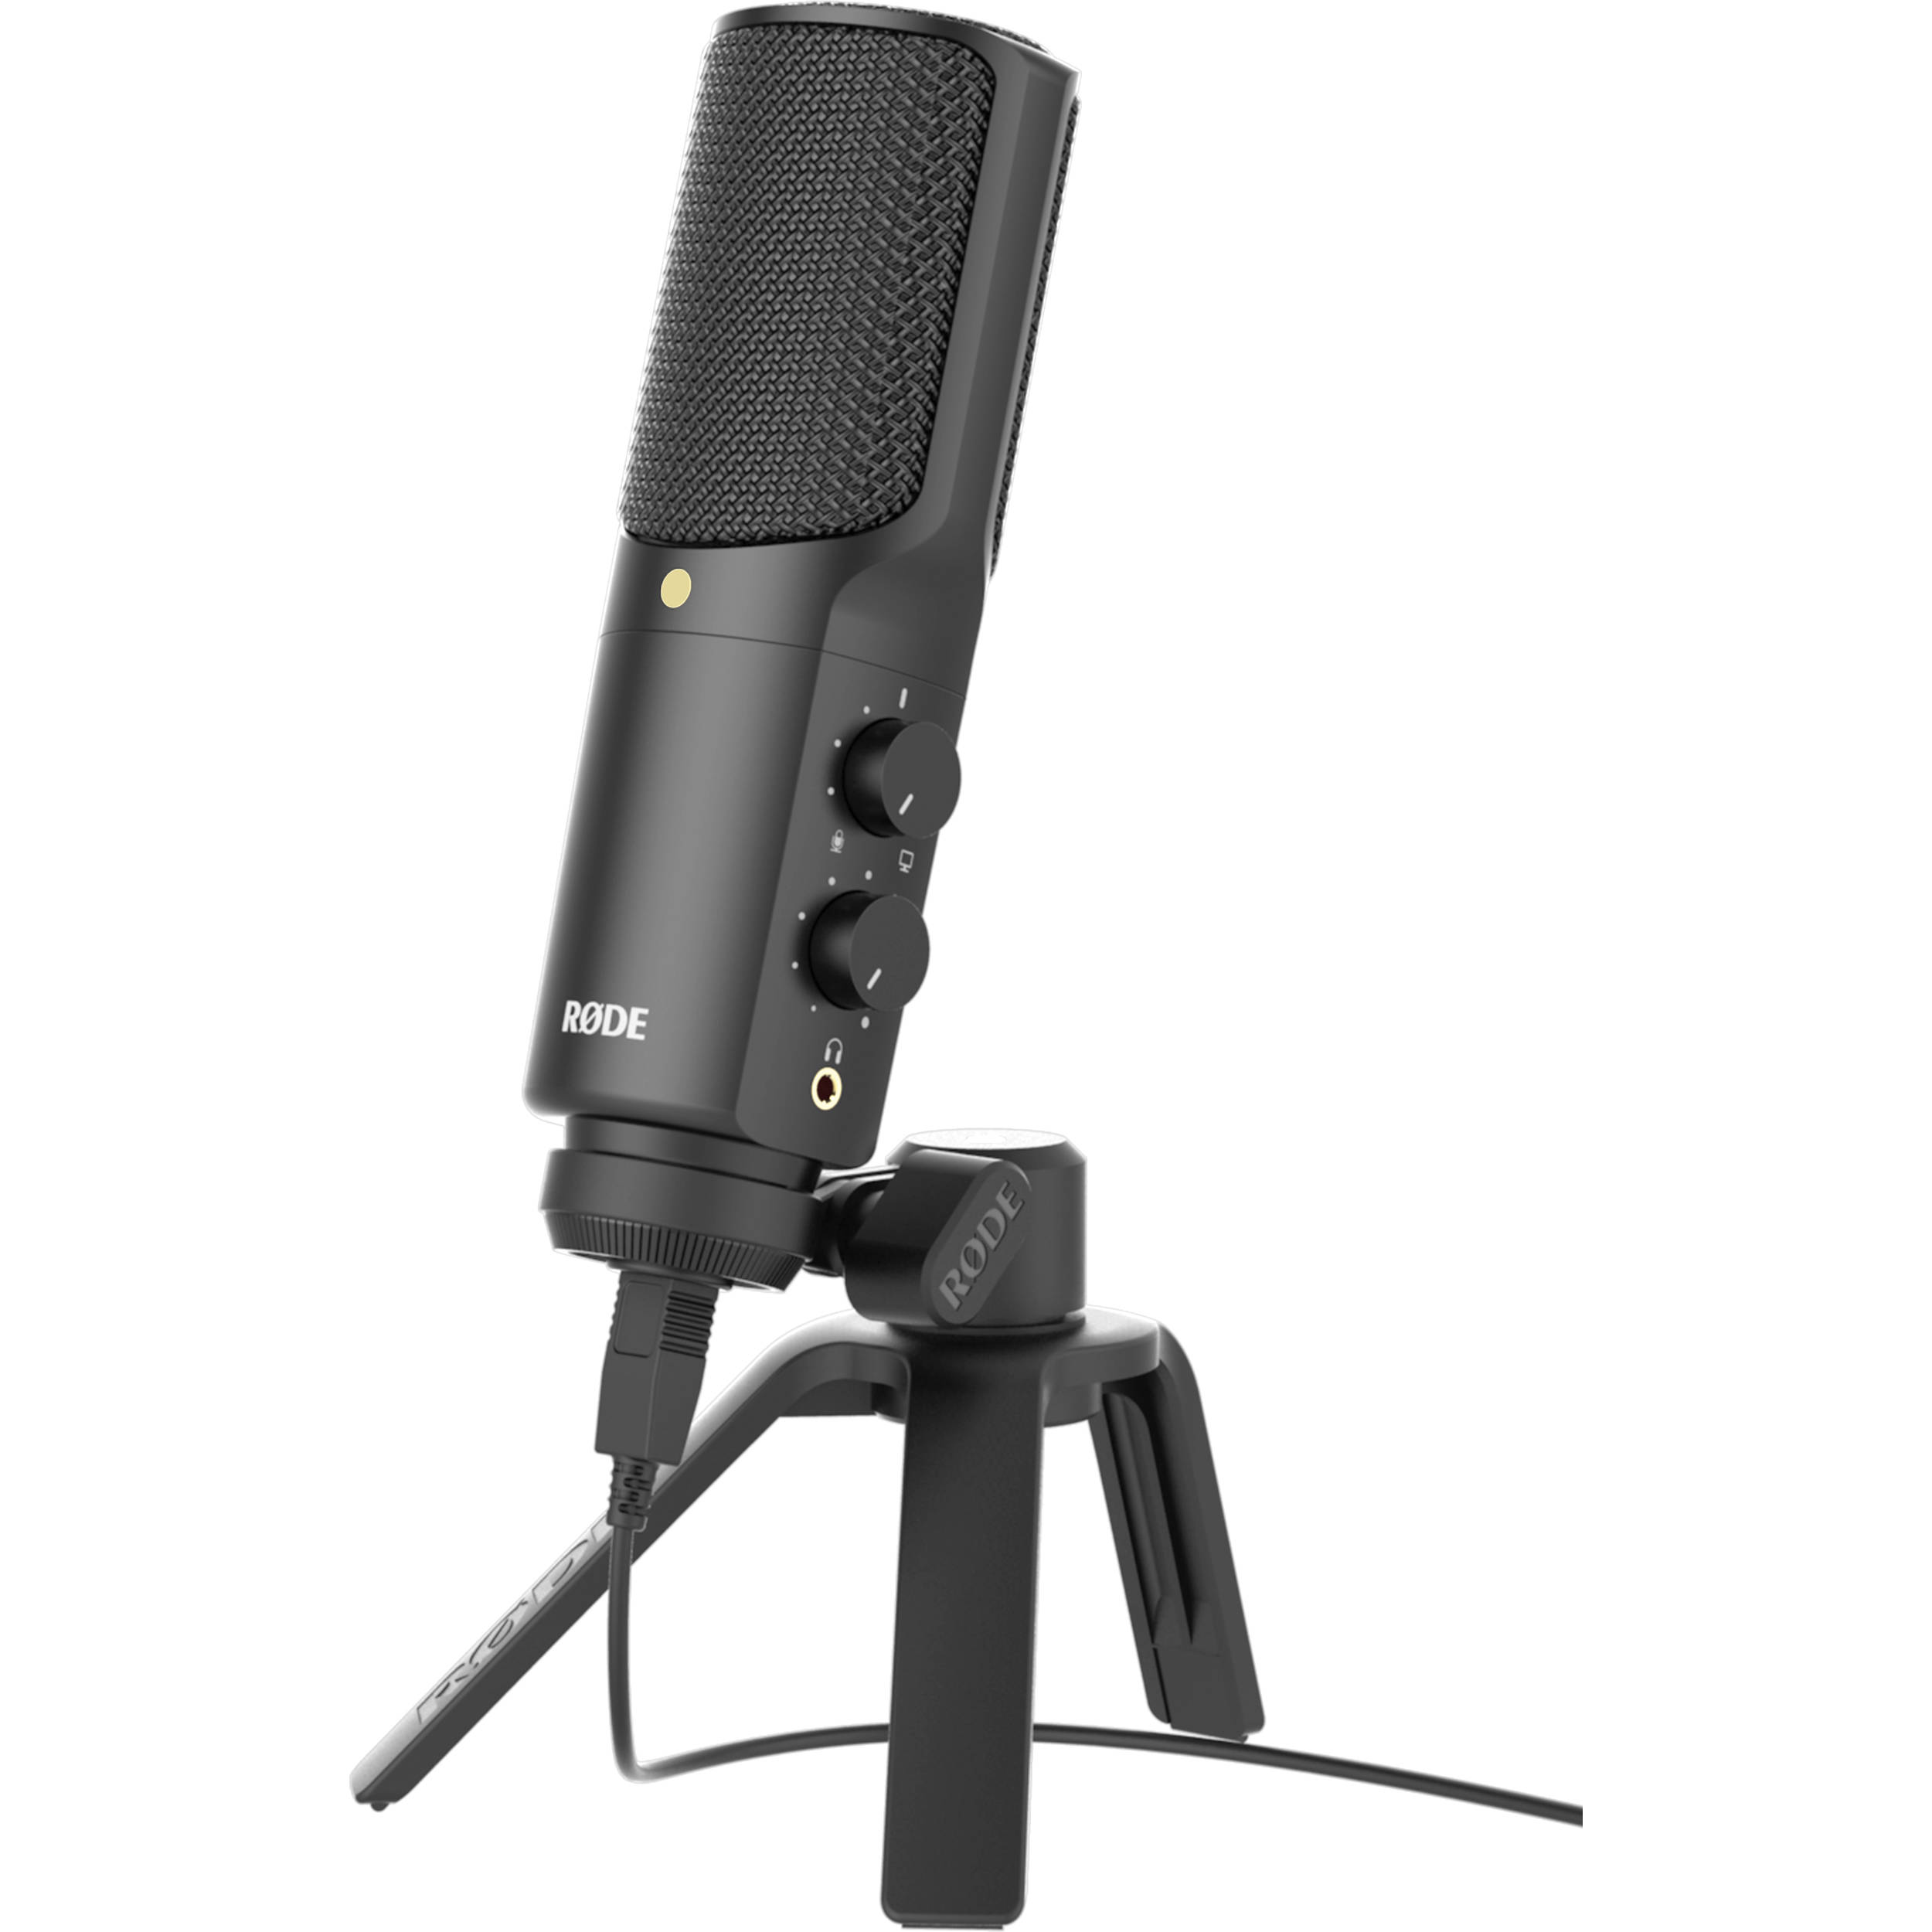 rode nt usb usb microphone rodntusb b h photo video. Black Bedroom Furniture Sets. Home Design Ideas